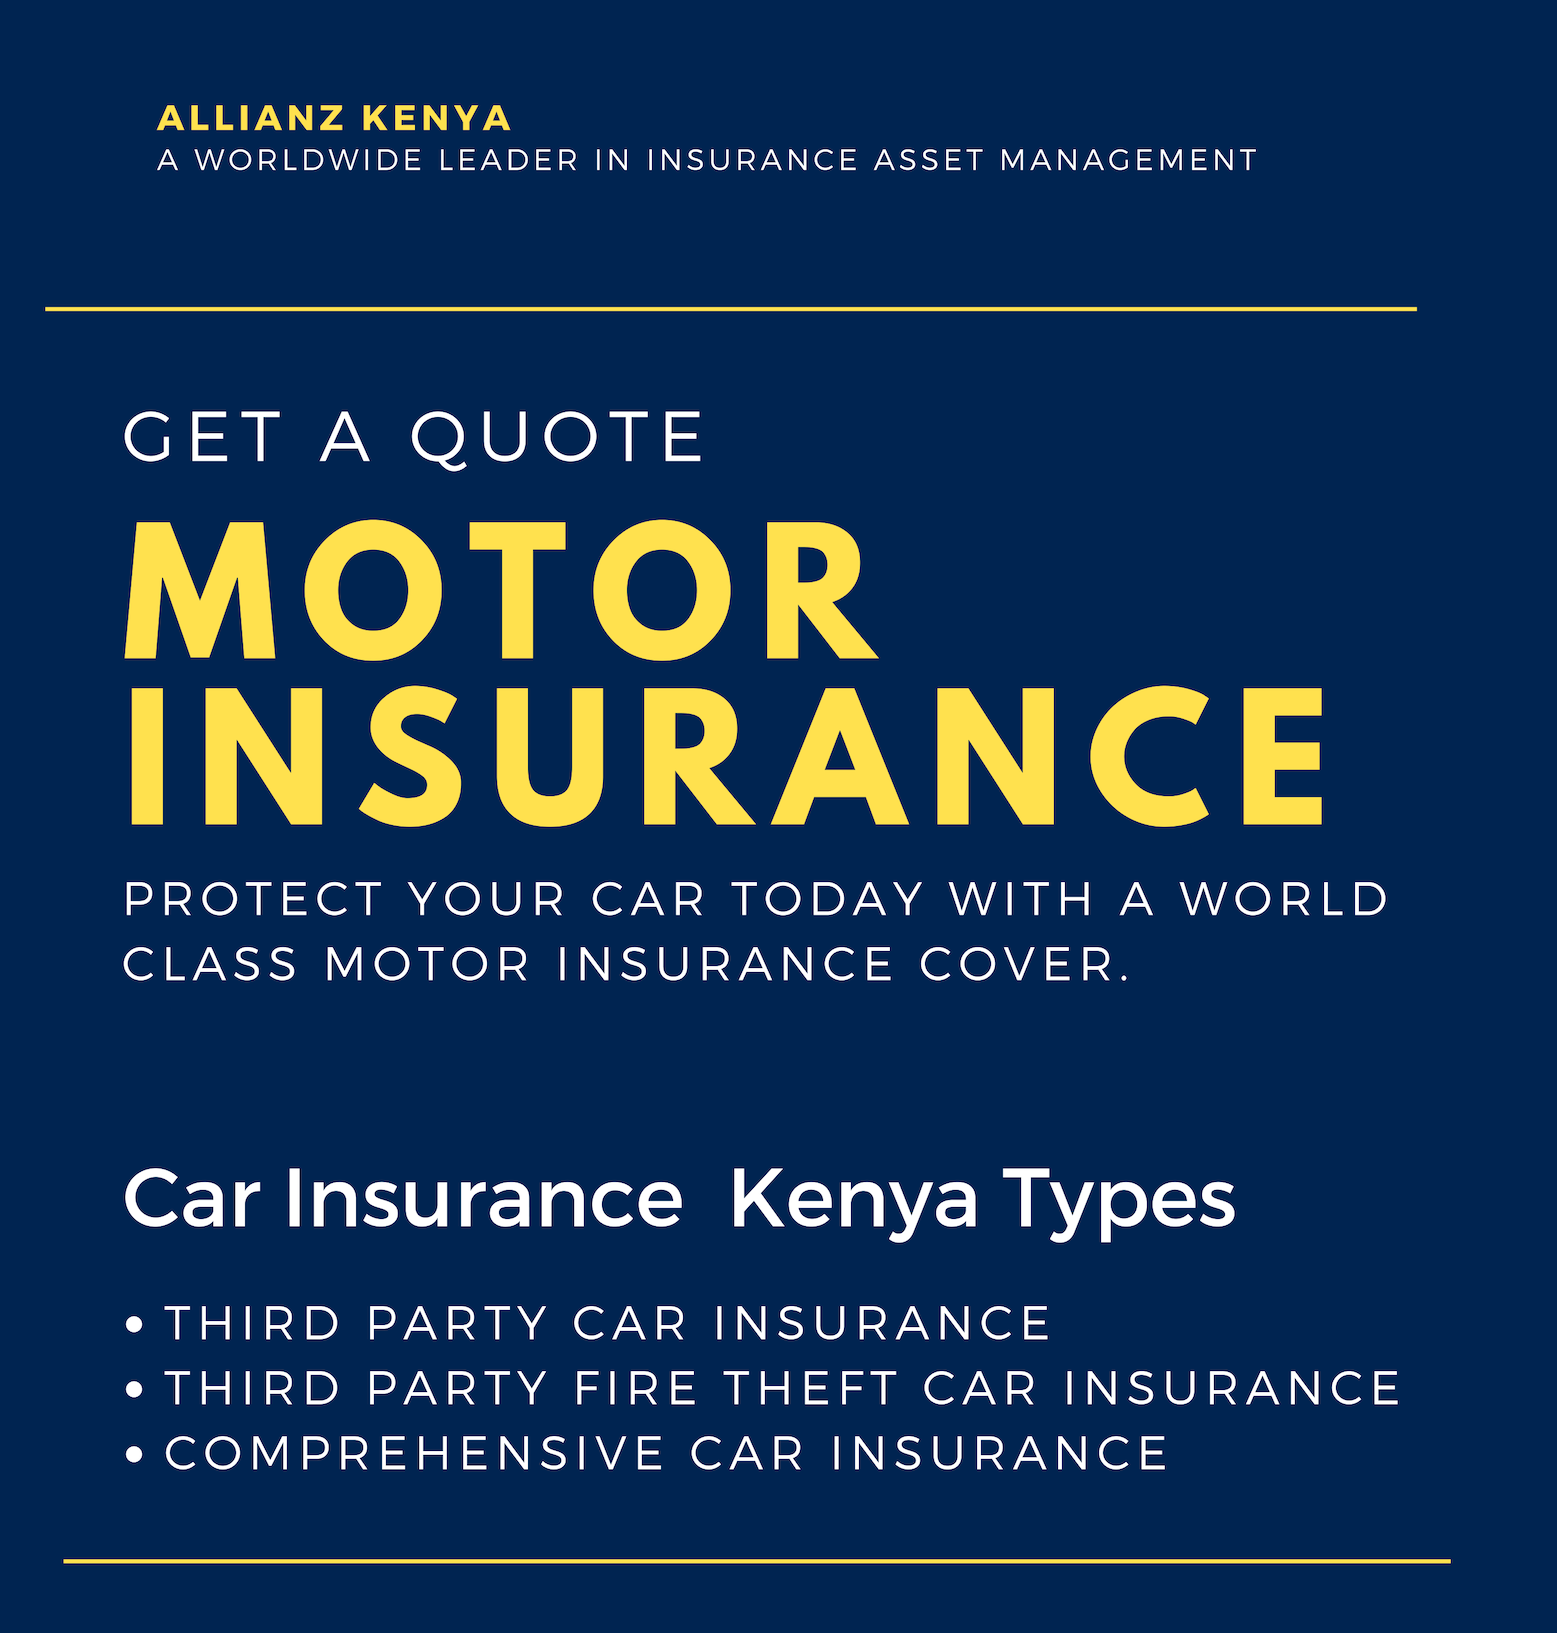 Whether You Want To Buy Comprehensive Car Insurance Or A